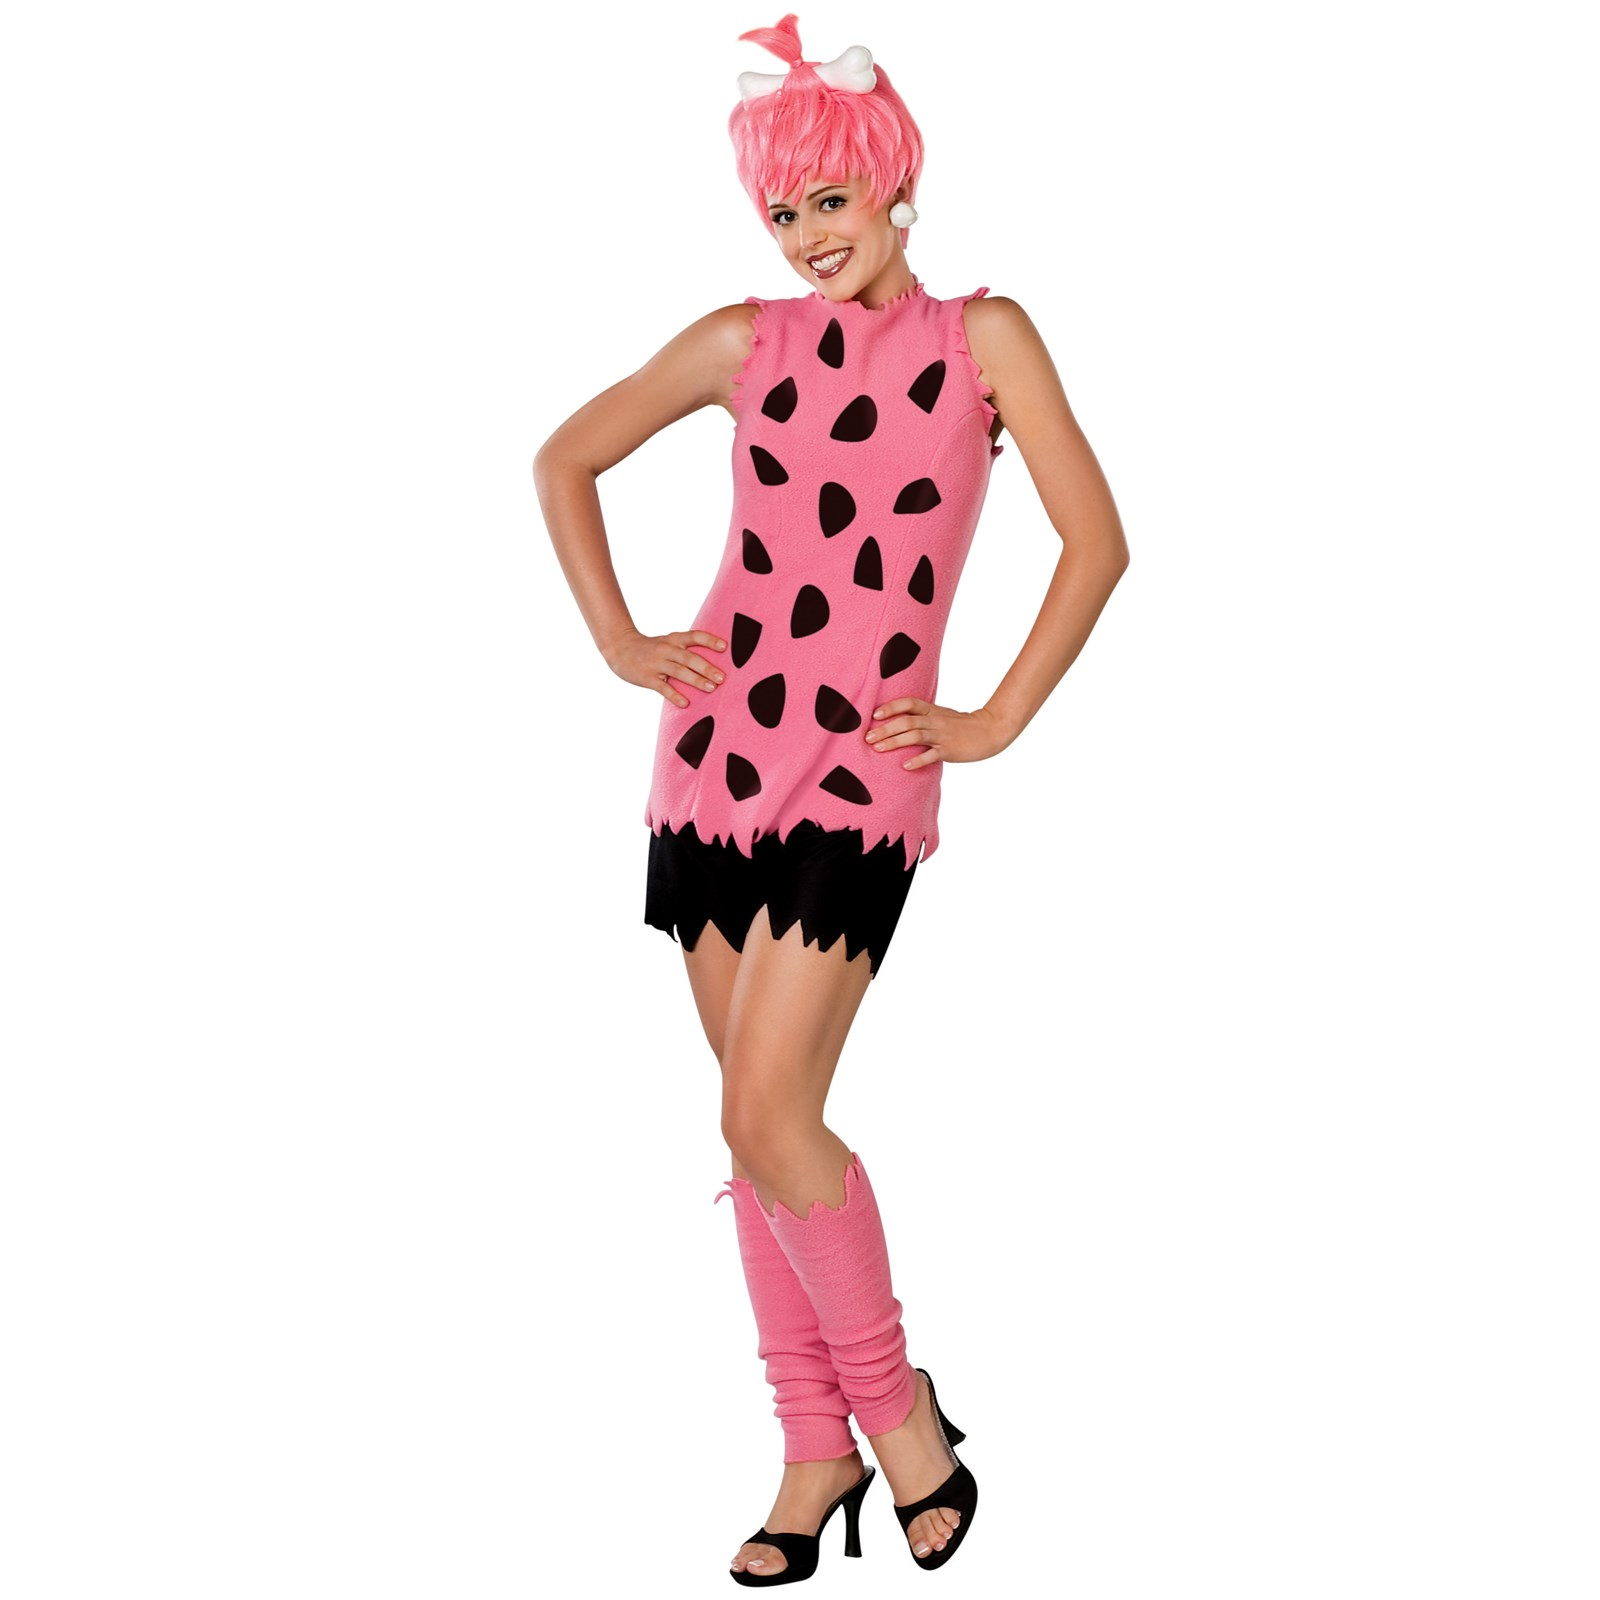 The Flintstones Pebbles Deluxe Adult